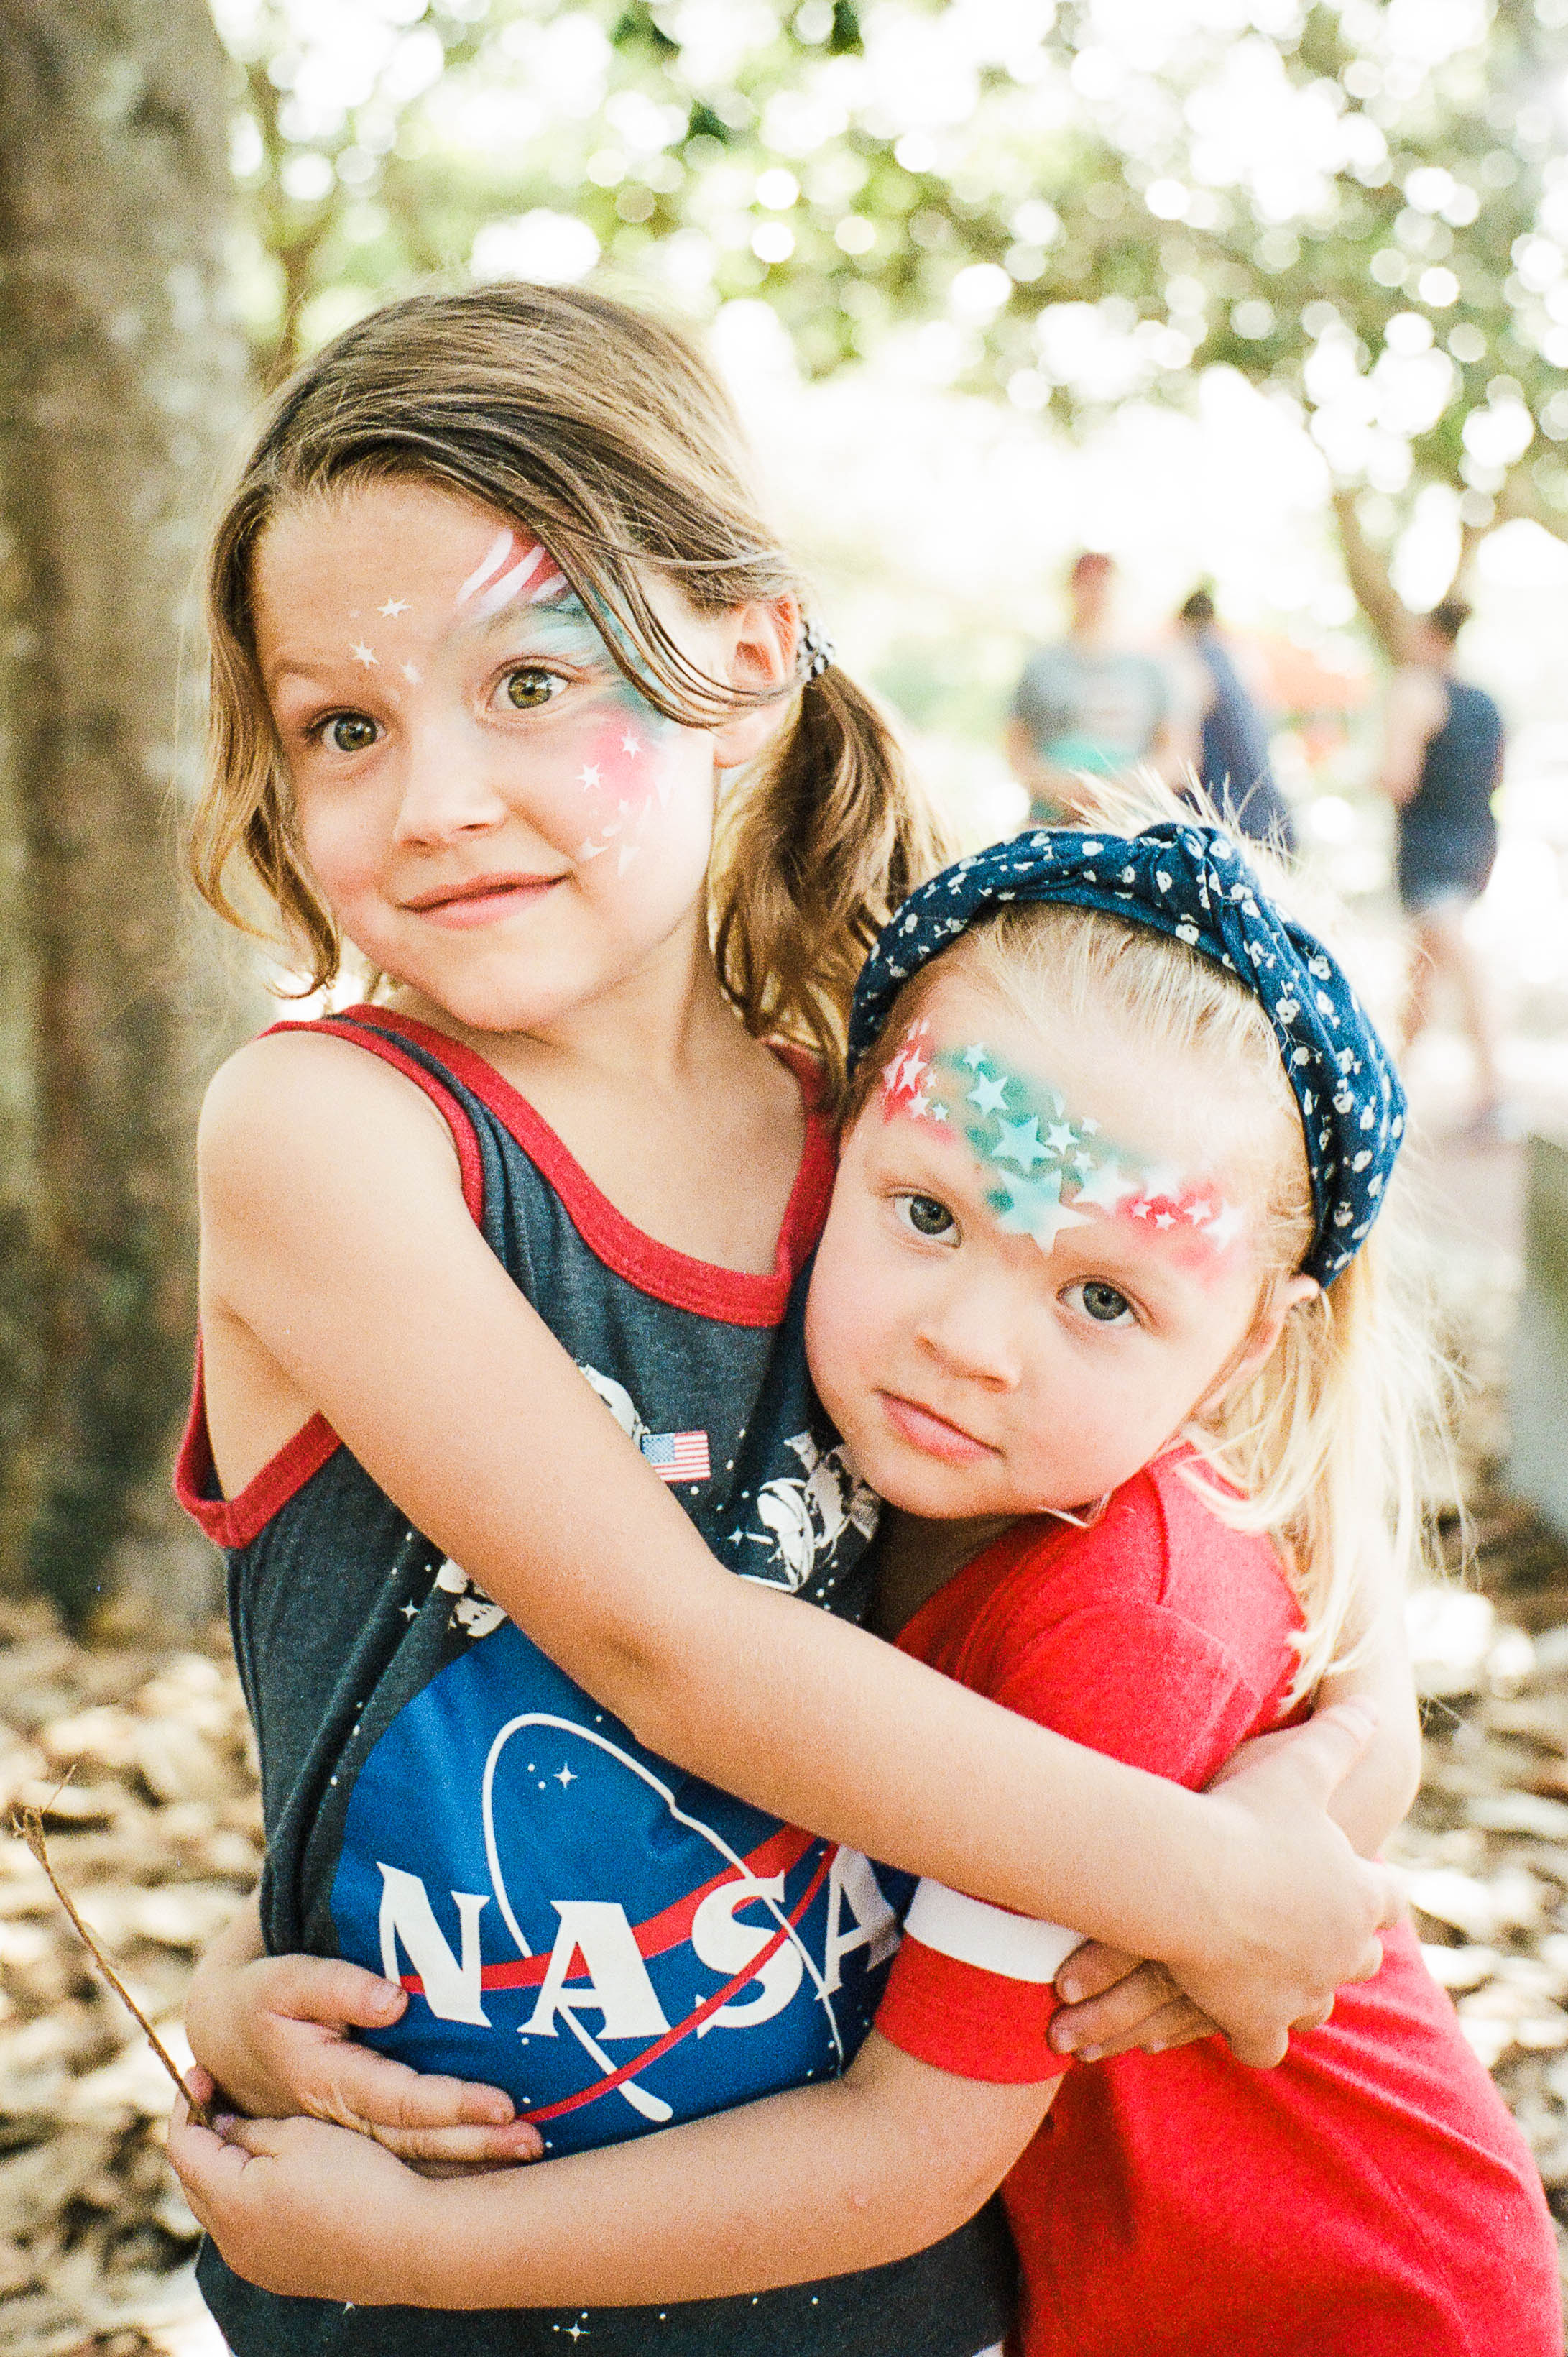 They had their faces painted (for free!) downtown prior to the big fireworks show.